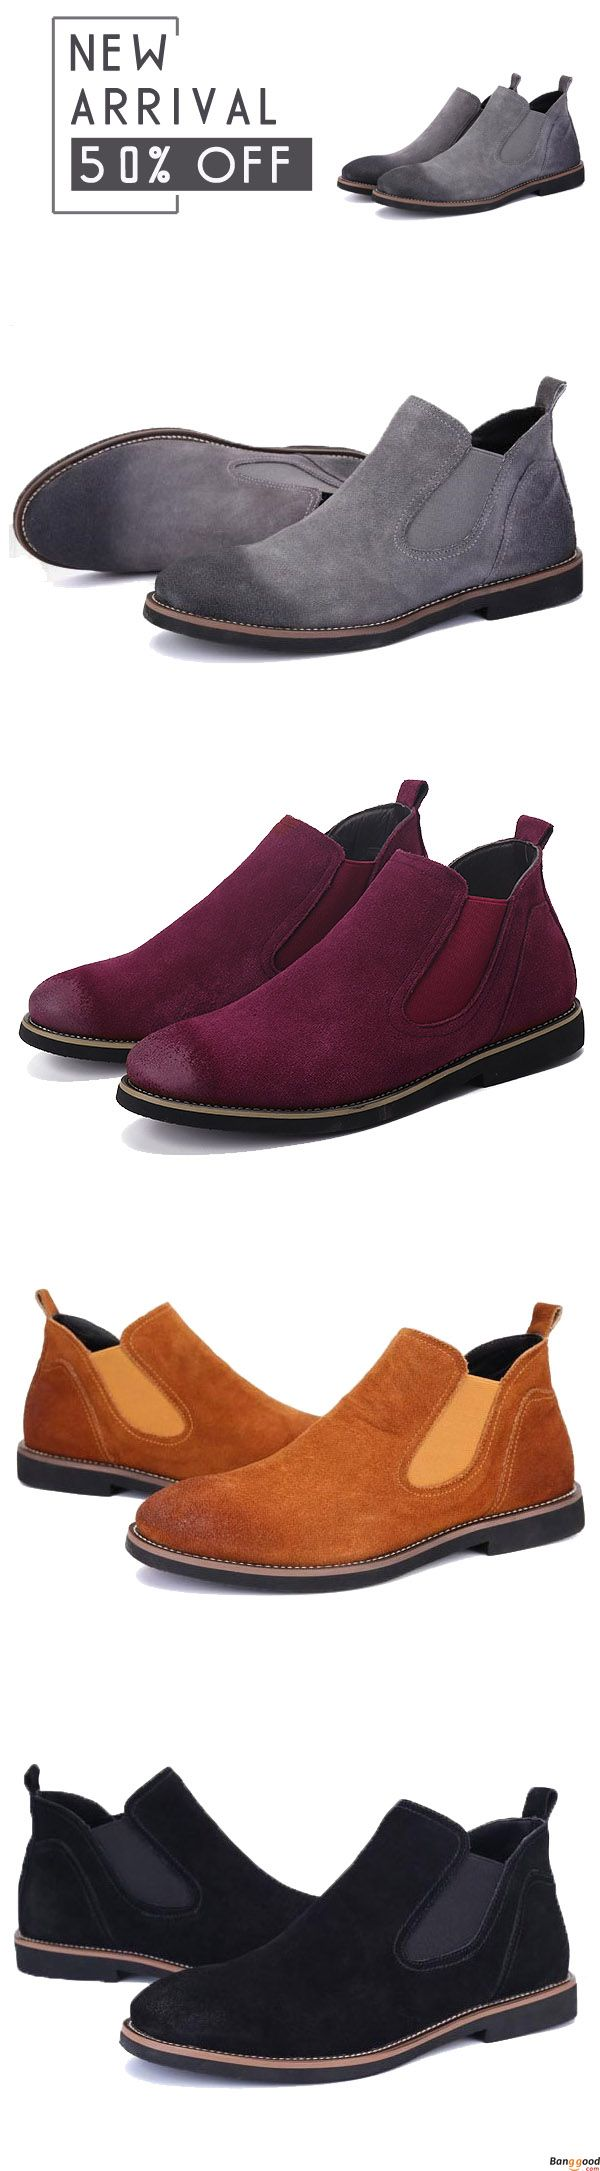 Men Casual Suede Leather Elastic Bnad Soft Ankle Boots. British style for winter. $51.99 + Free Shipping. Shop at banggood with super affordable price.